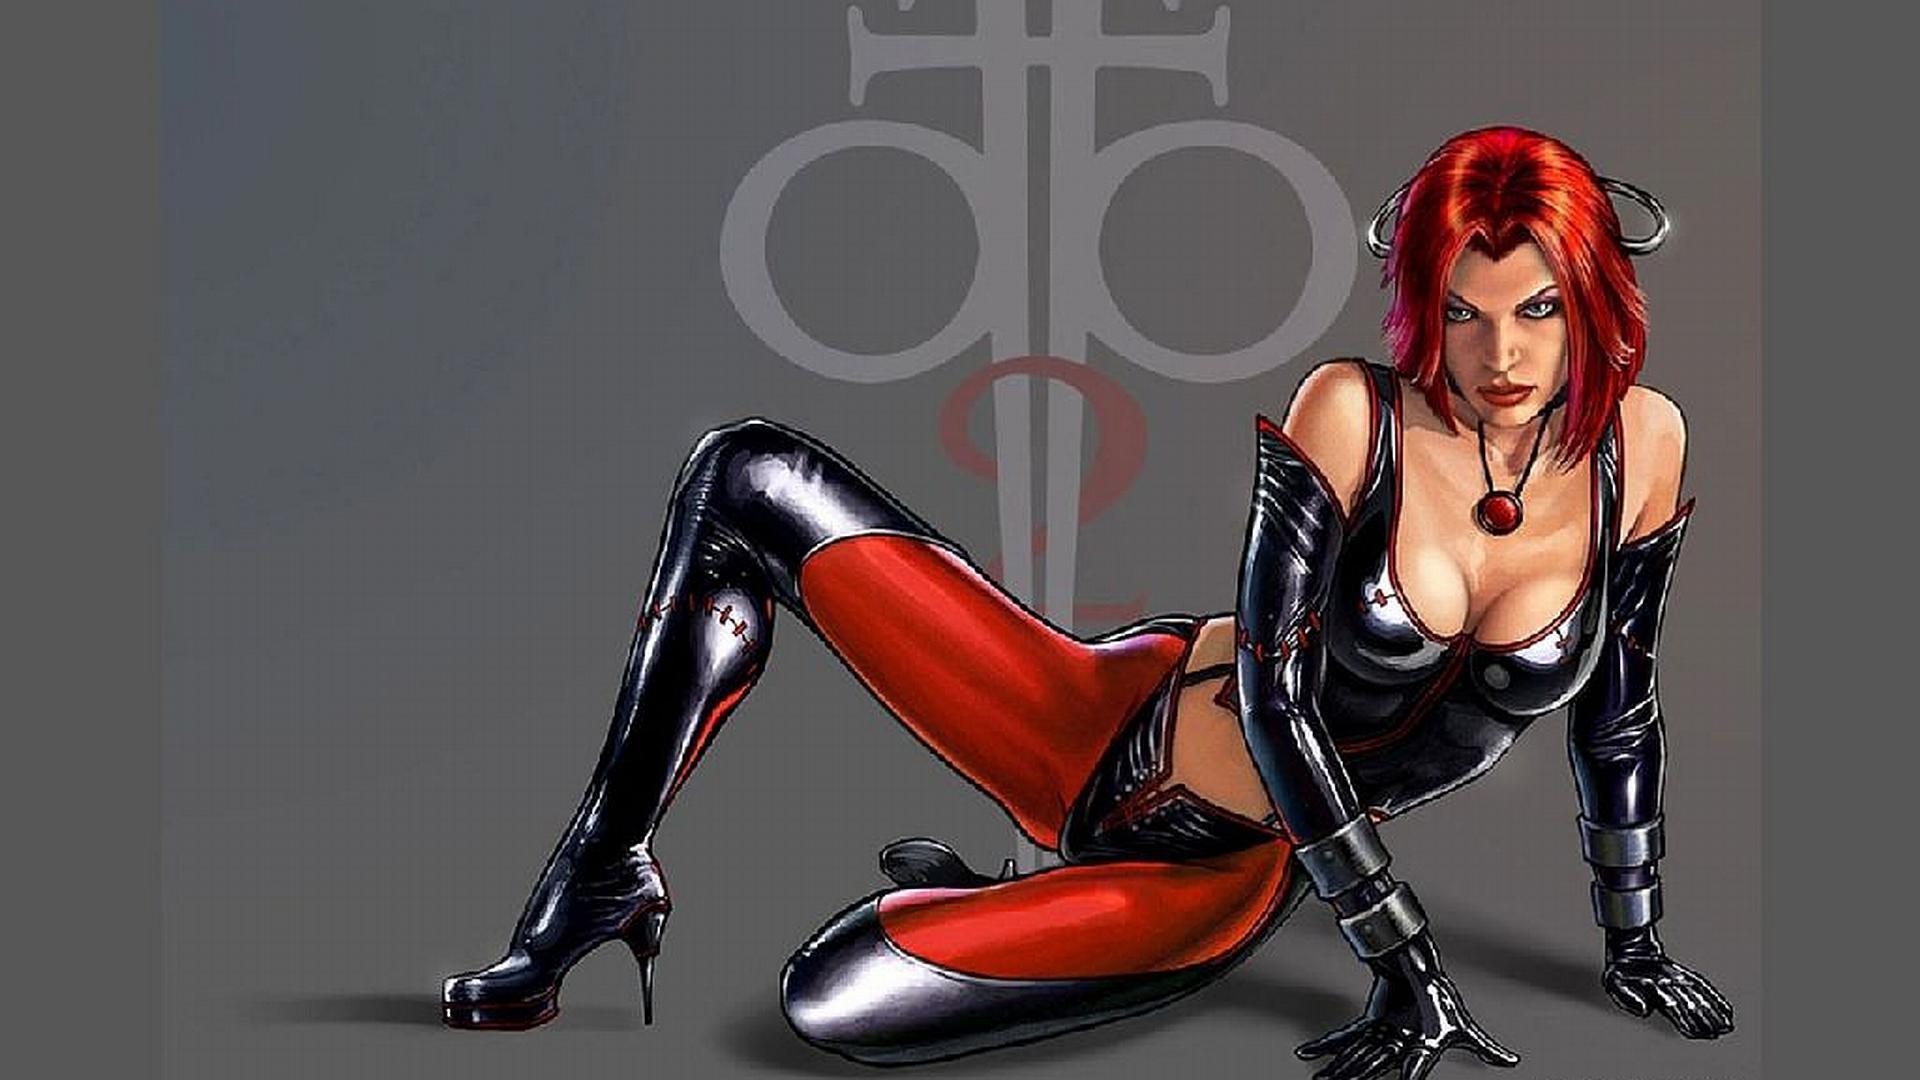 Bloodrayne wallpapers Bloodrayne stock